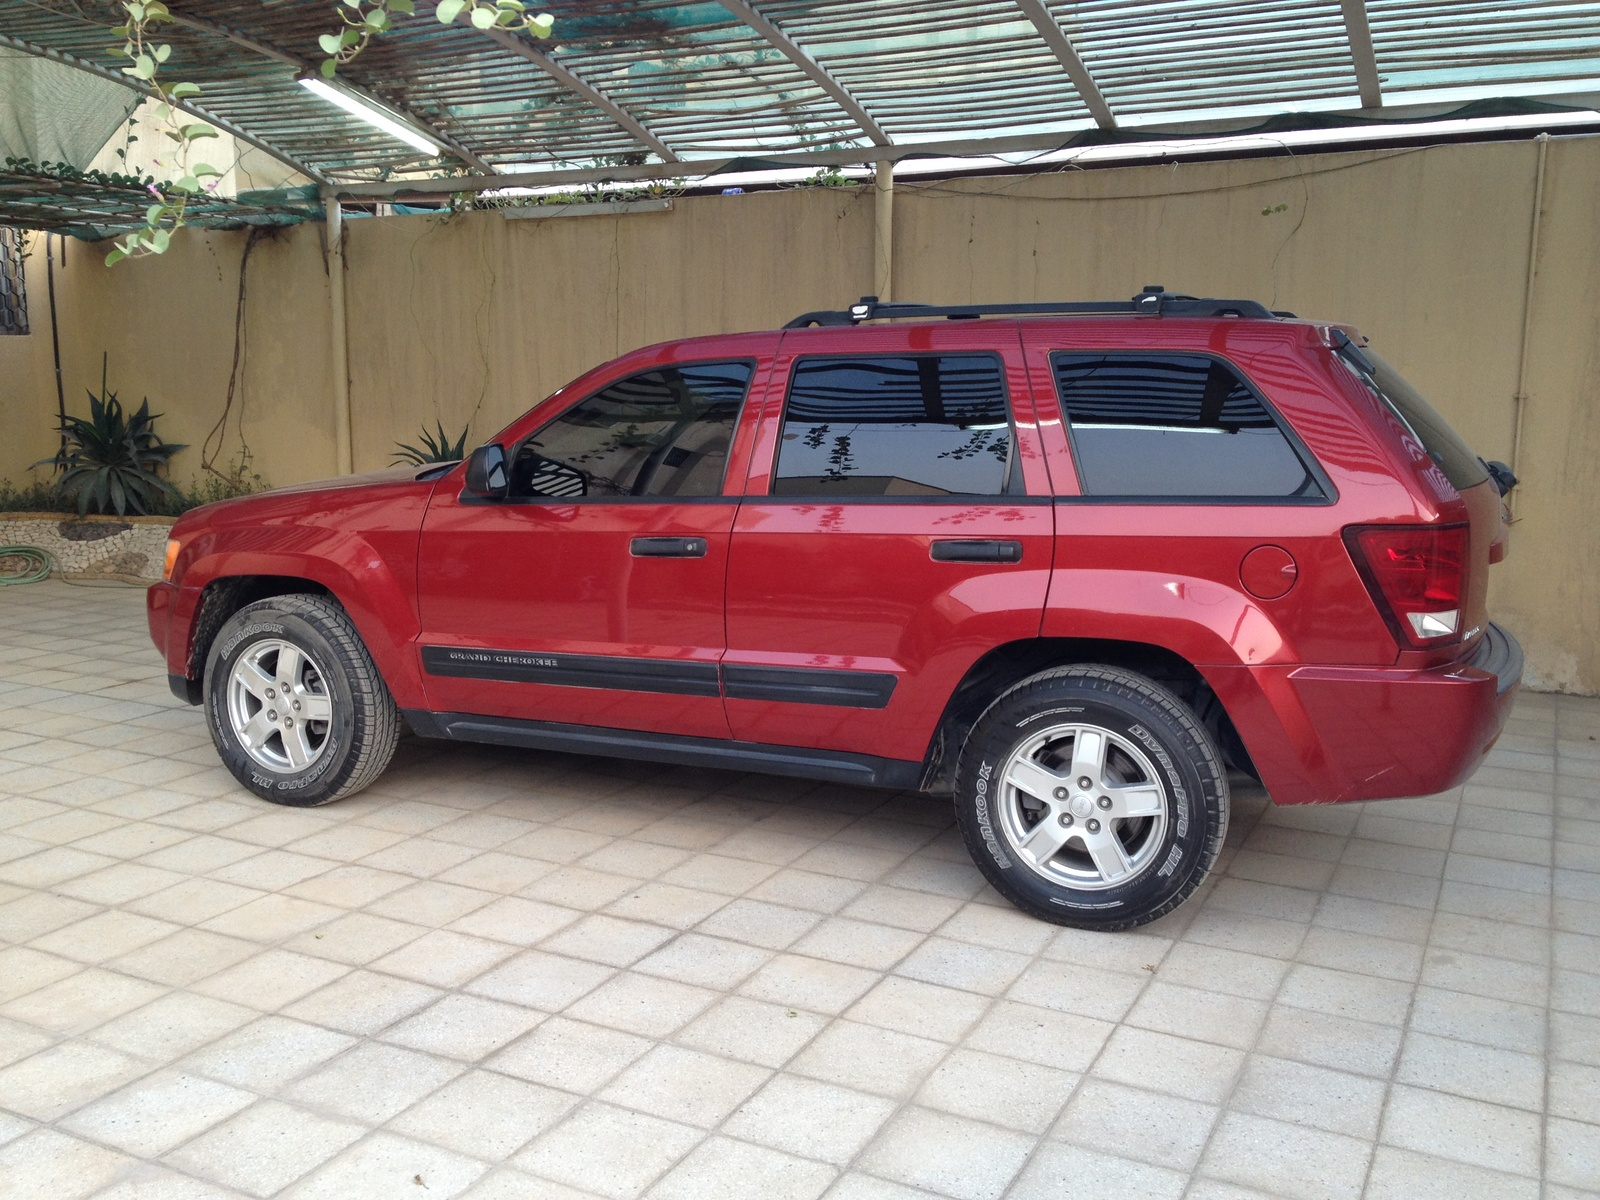 2006 jeep grand cherokee laredo picture exterior. Cars Review. Best American Auto & Cars Review